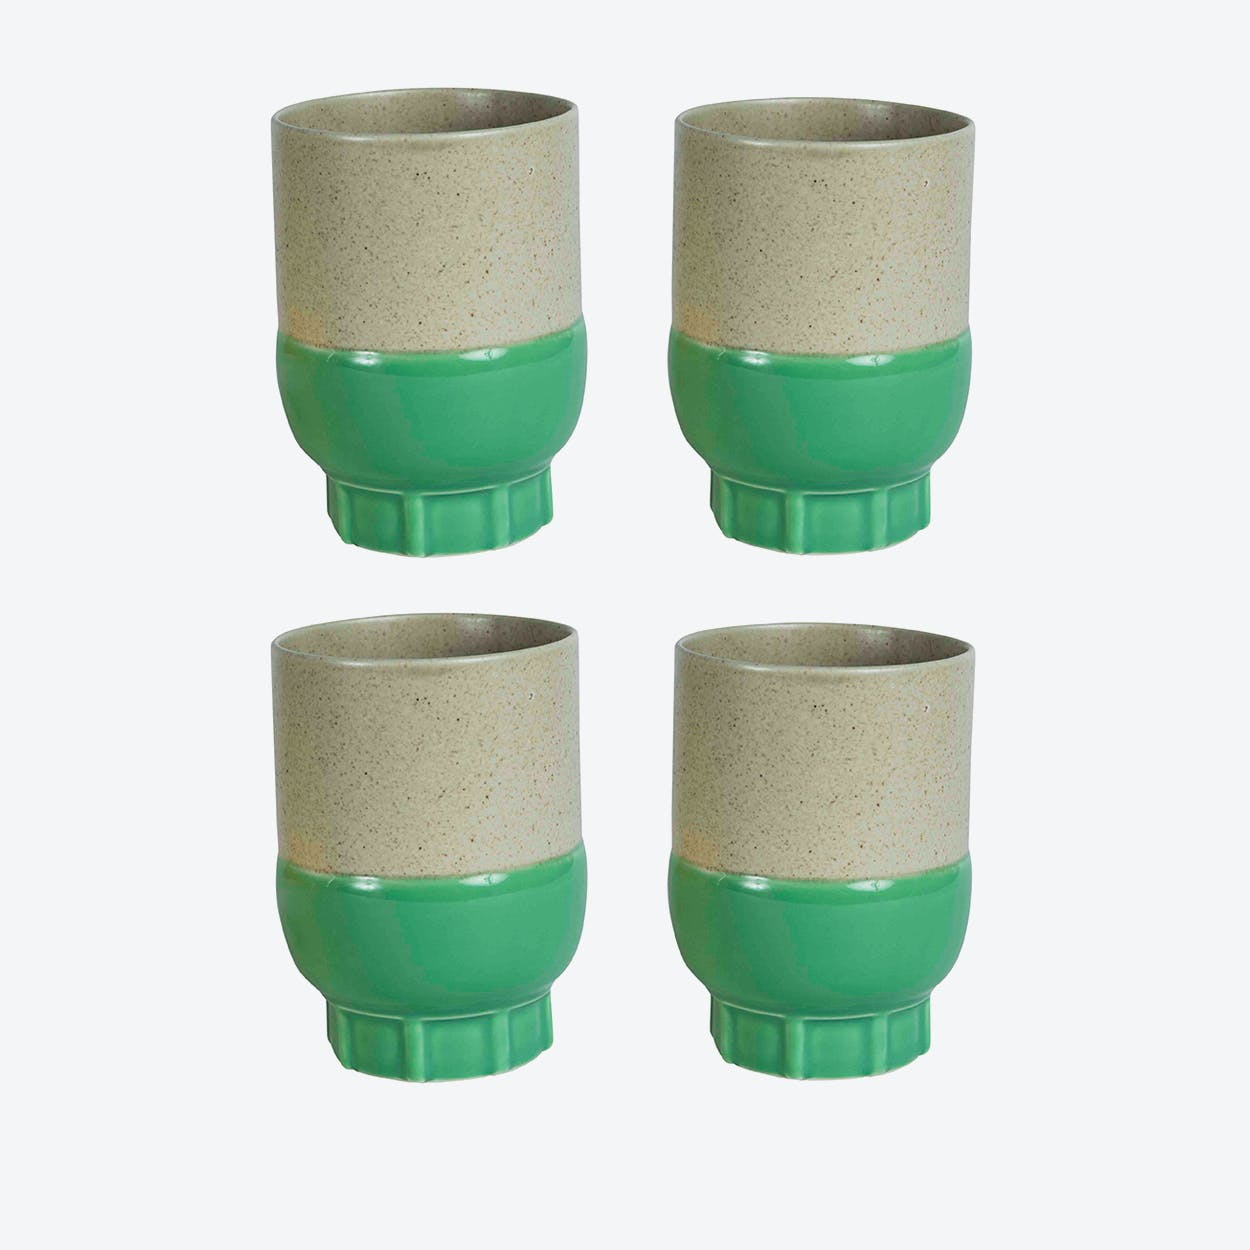 Two Colour Cups - Green (set of 4 pcs)